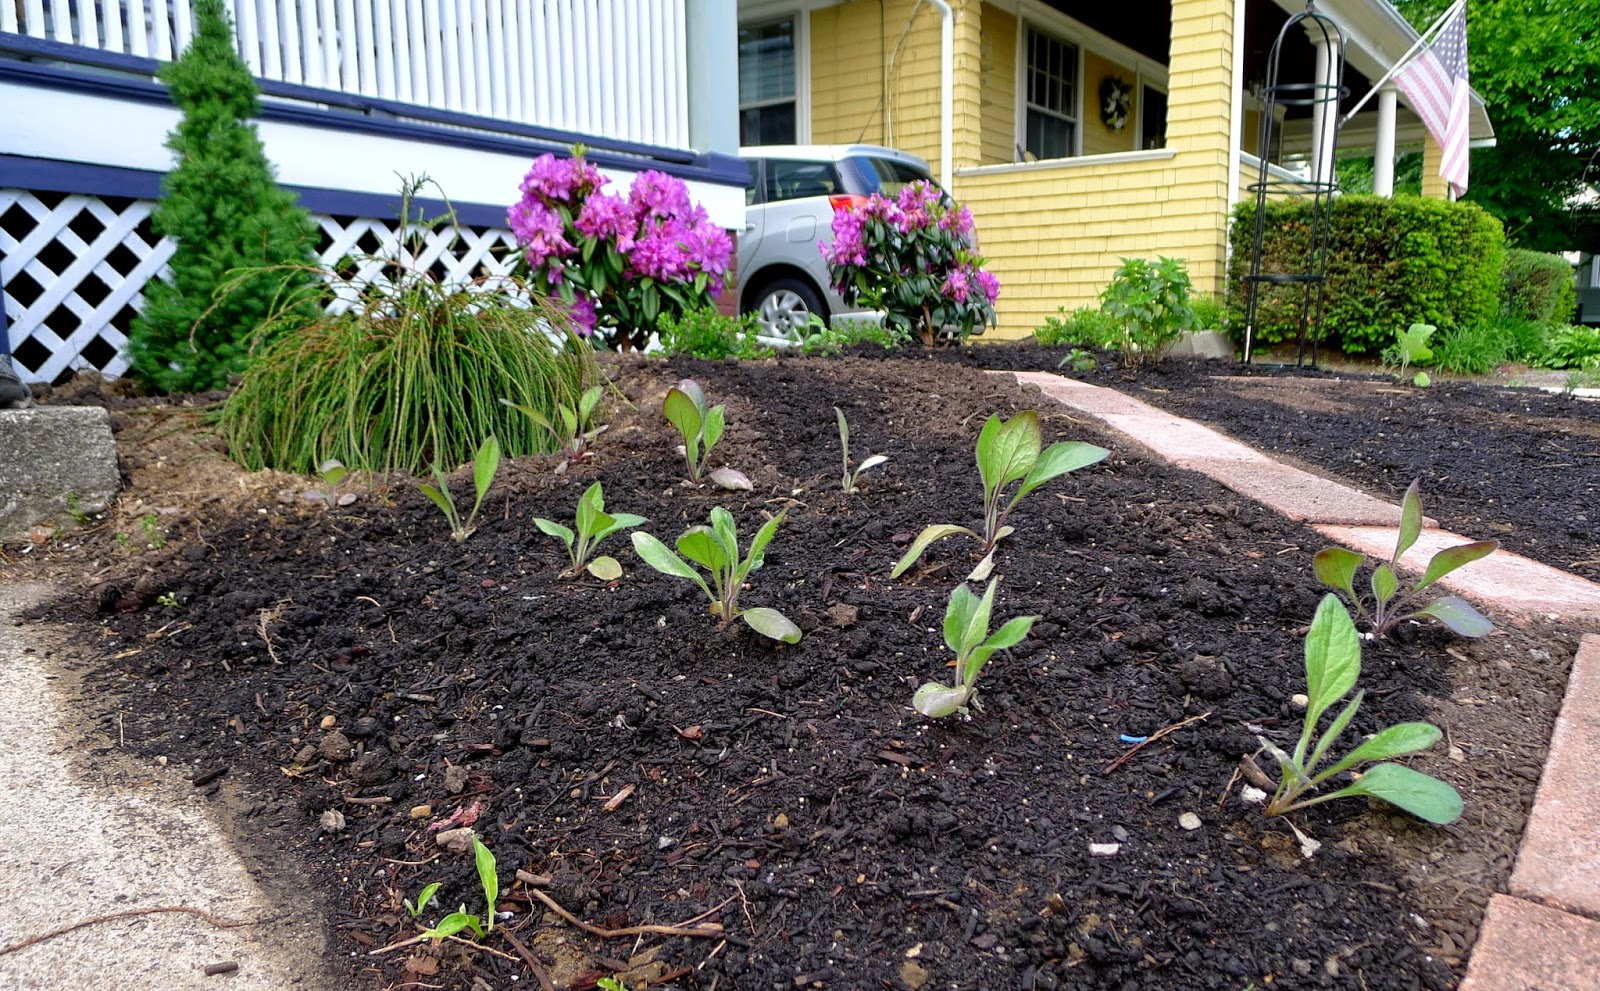 Black-Eyed Susans, soil erosion, edible landscaping